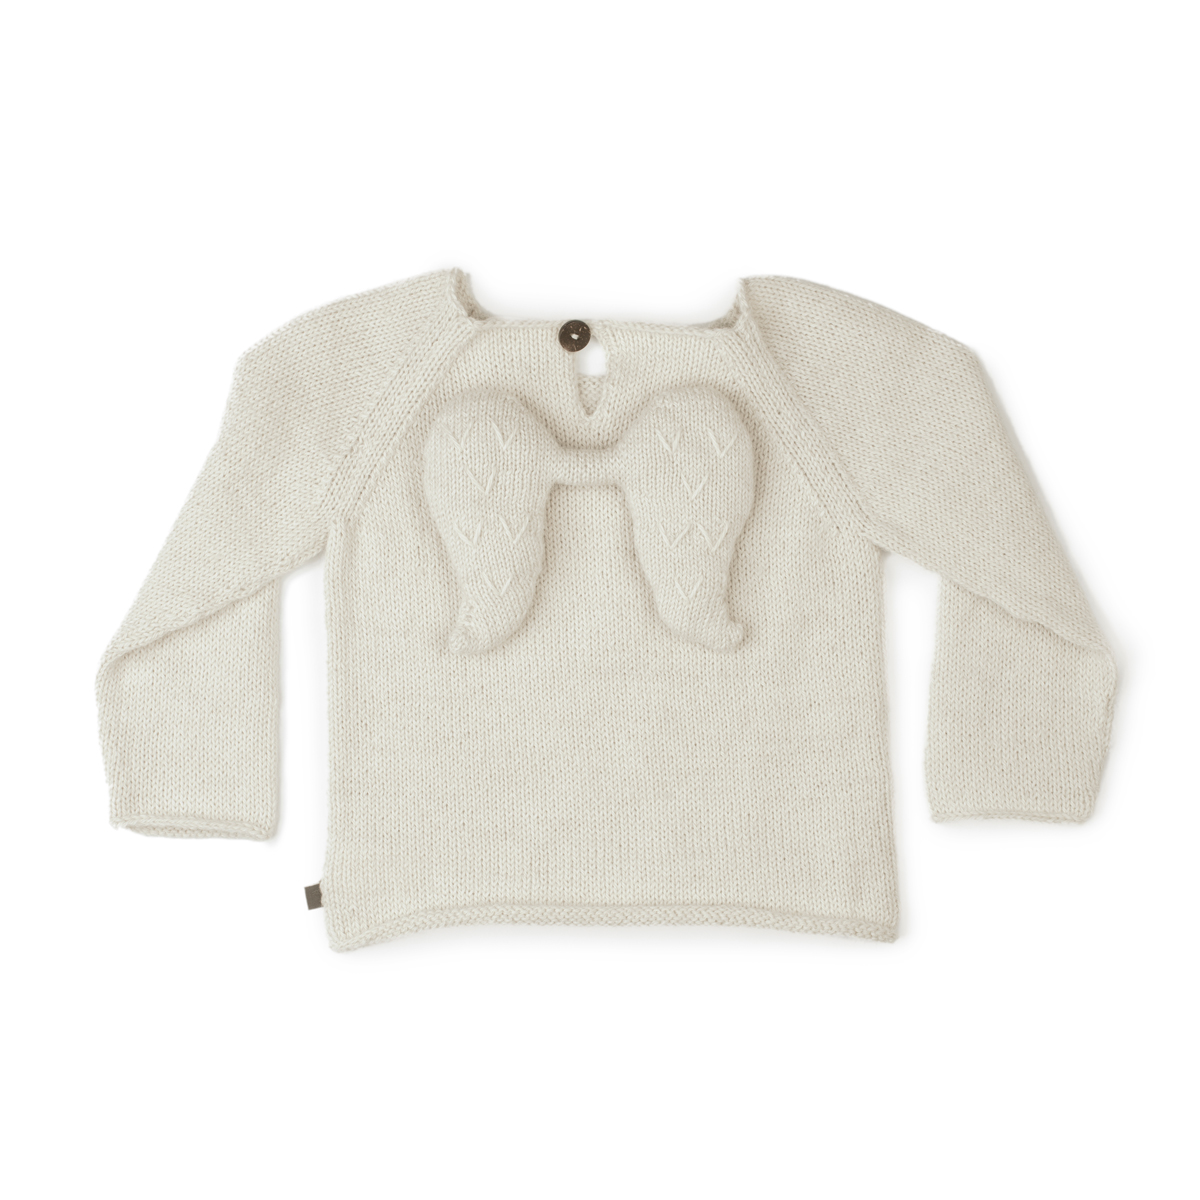 Oeuf Alpaca Wool Angel Sweater in White